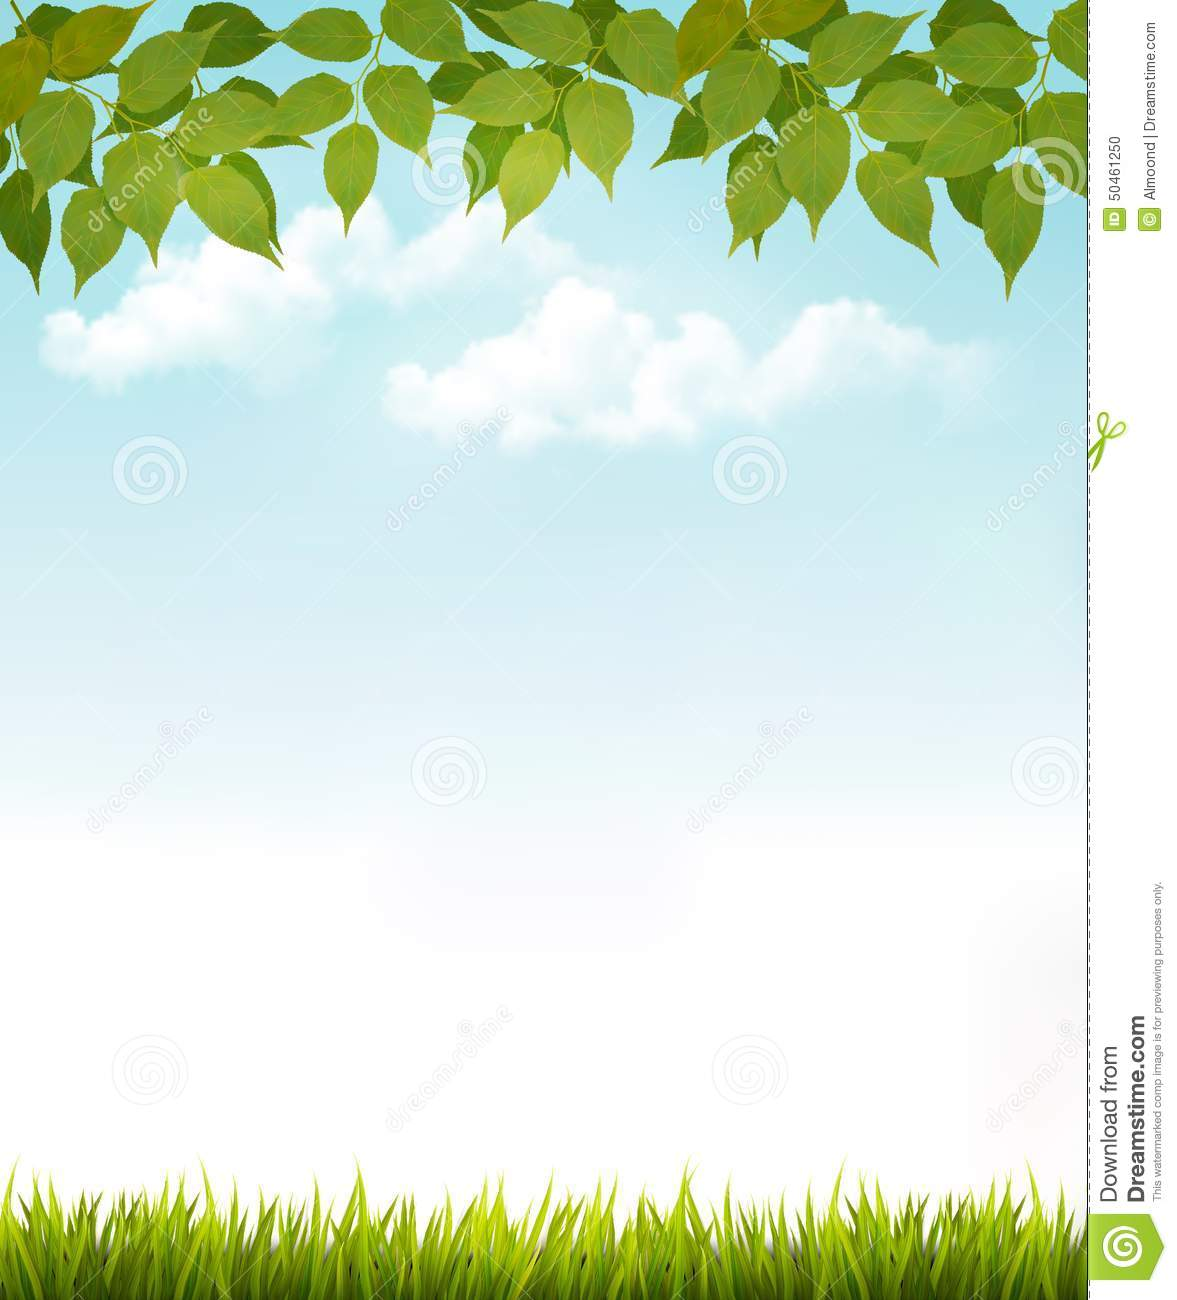 Autumn Tree Leaf Fall Animated Wallpaper Nature Background With Leaves And Grass Stock Photo